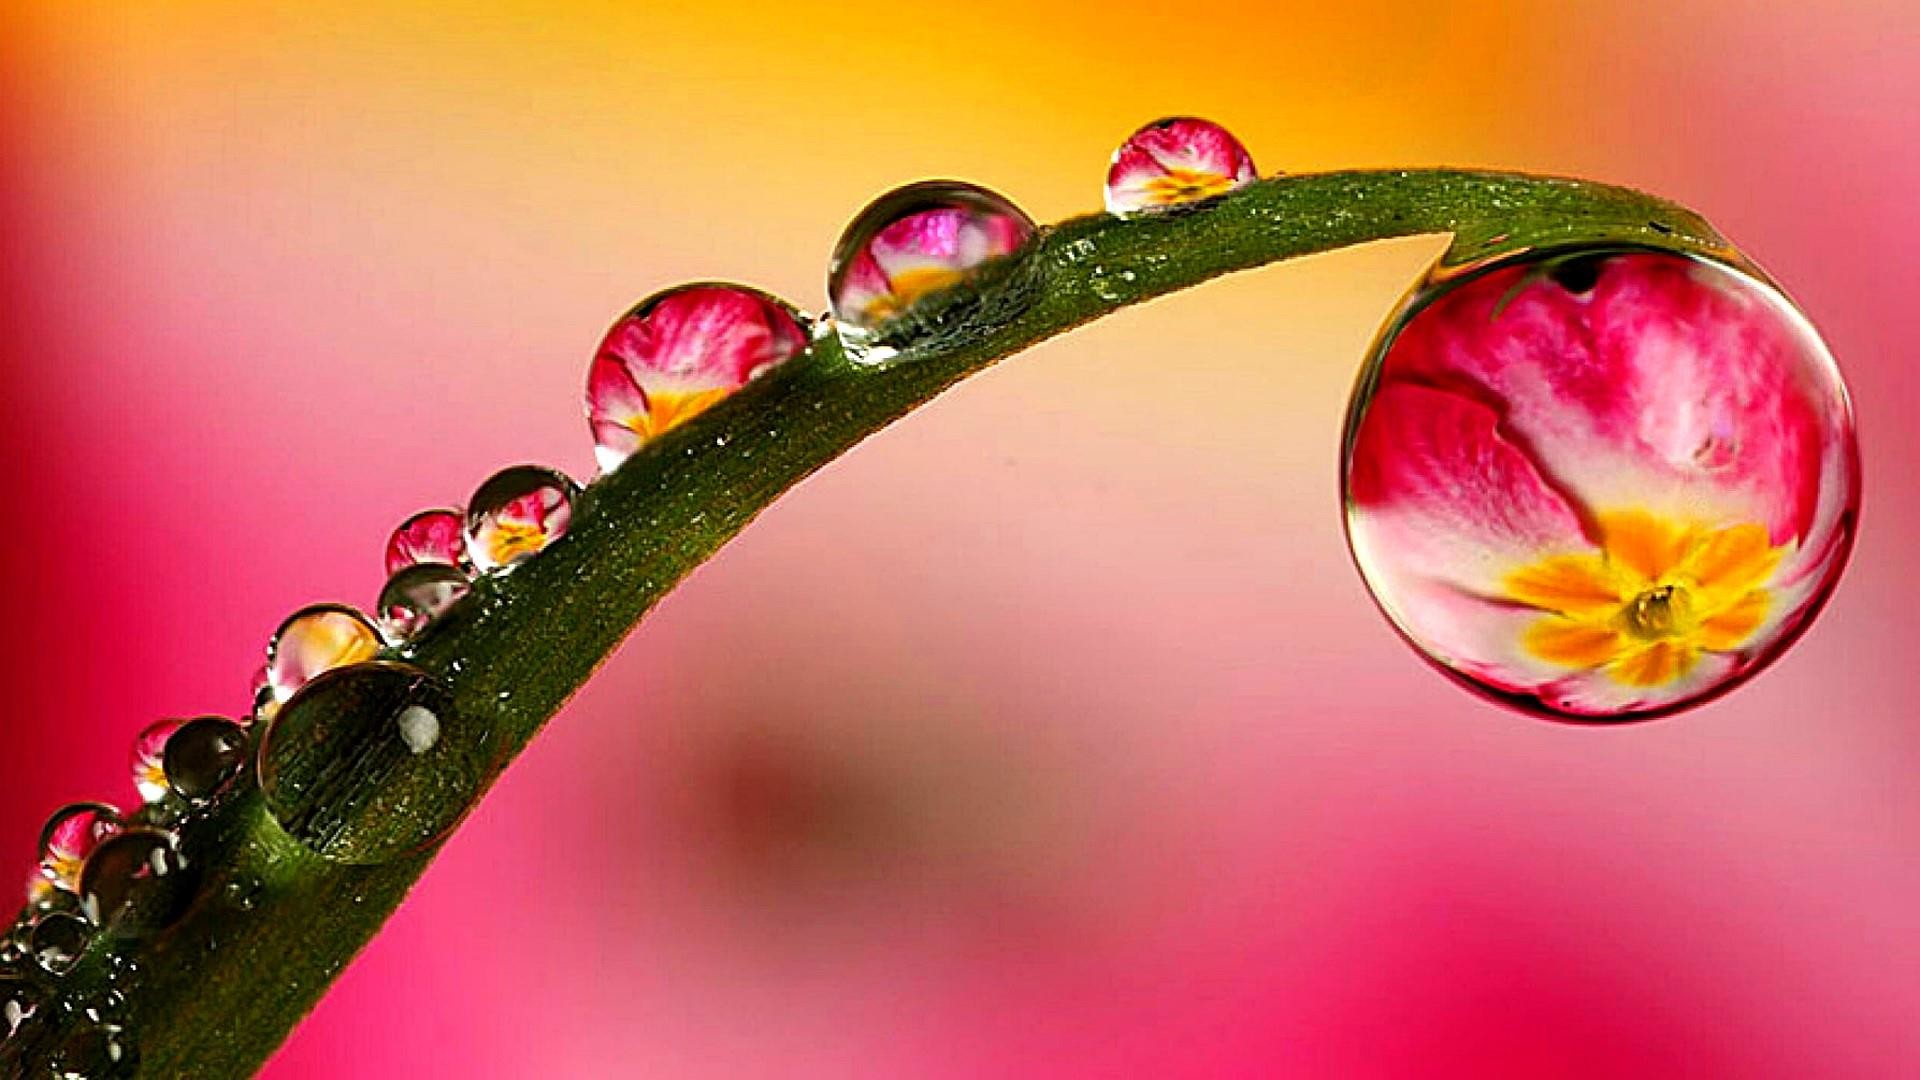 Res: 1920x1080, Macro Water Drops Wallpaper | Wallpaper Studio 10 | Tens of thousands HD  and UltraHD wallpapers for Android, Windows and Xbox